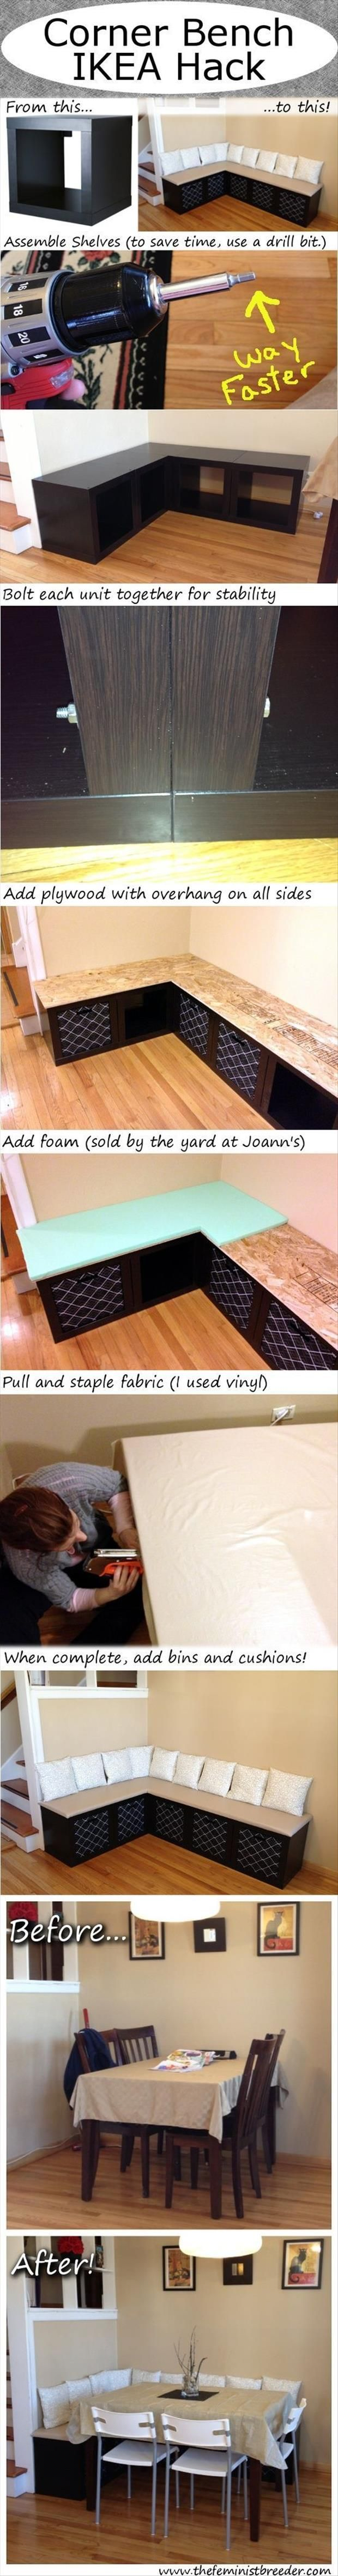 Dump A Day Fun Do It Yourself Craft Ideas - 32 Pics http://mrspals.com/?product_tag=threads